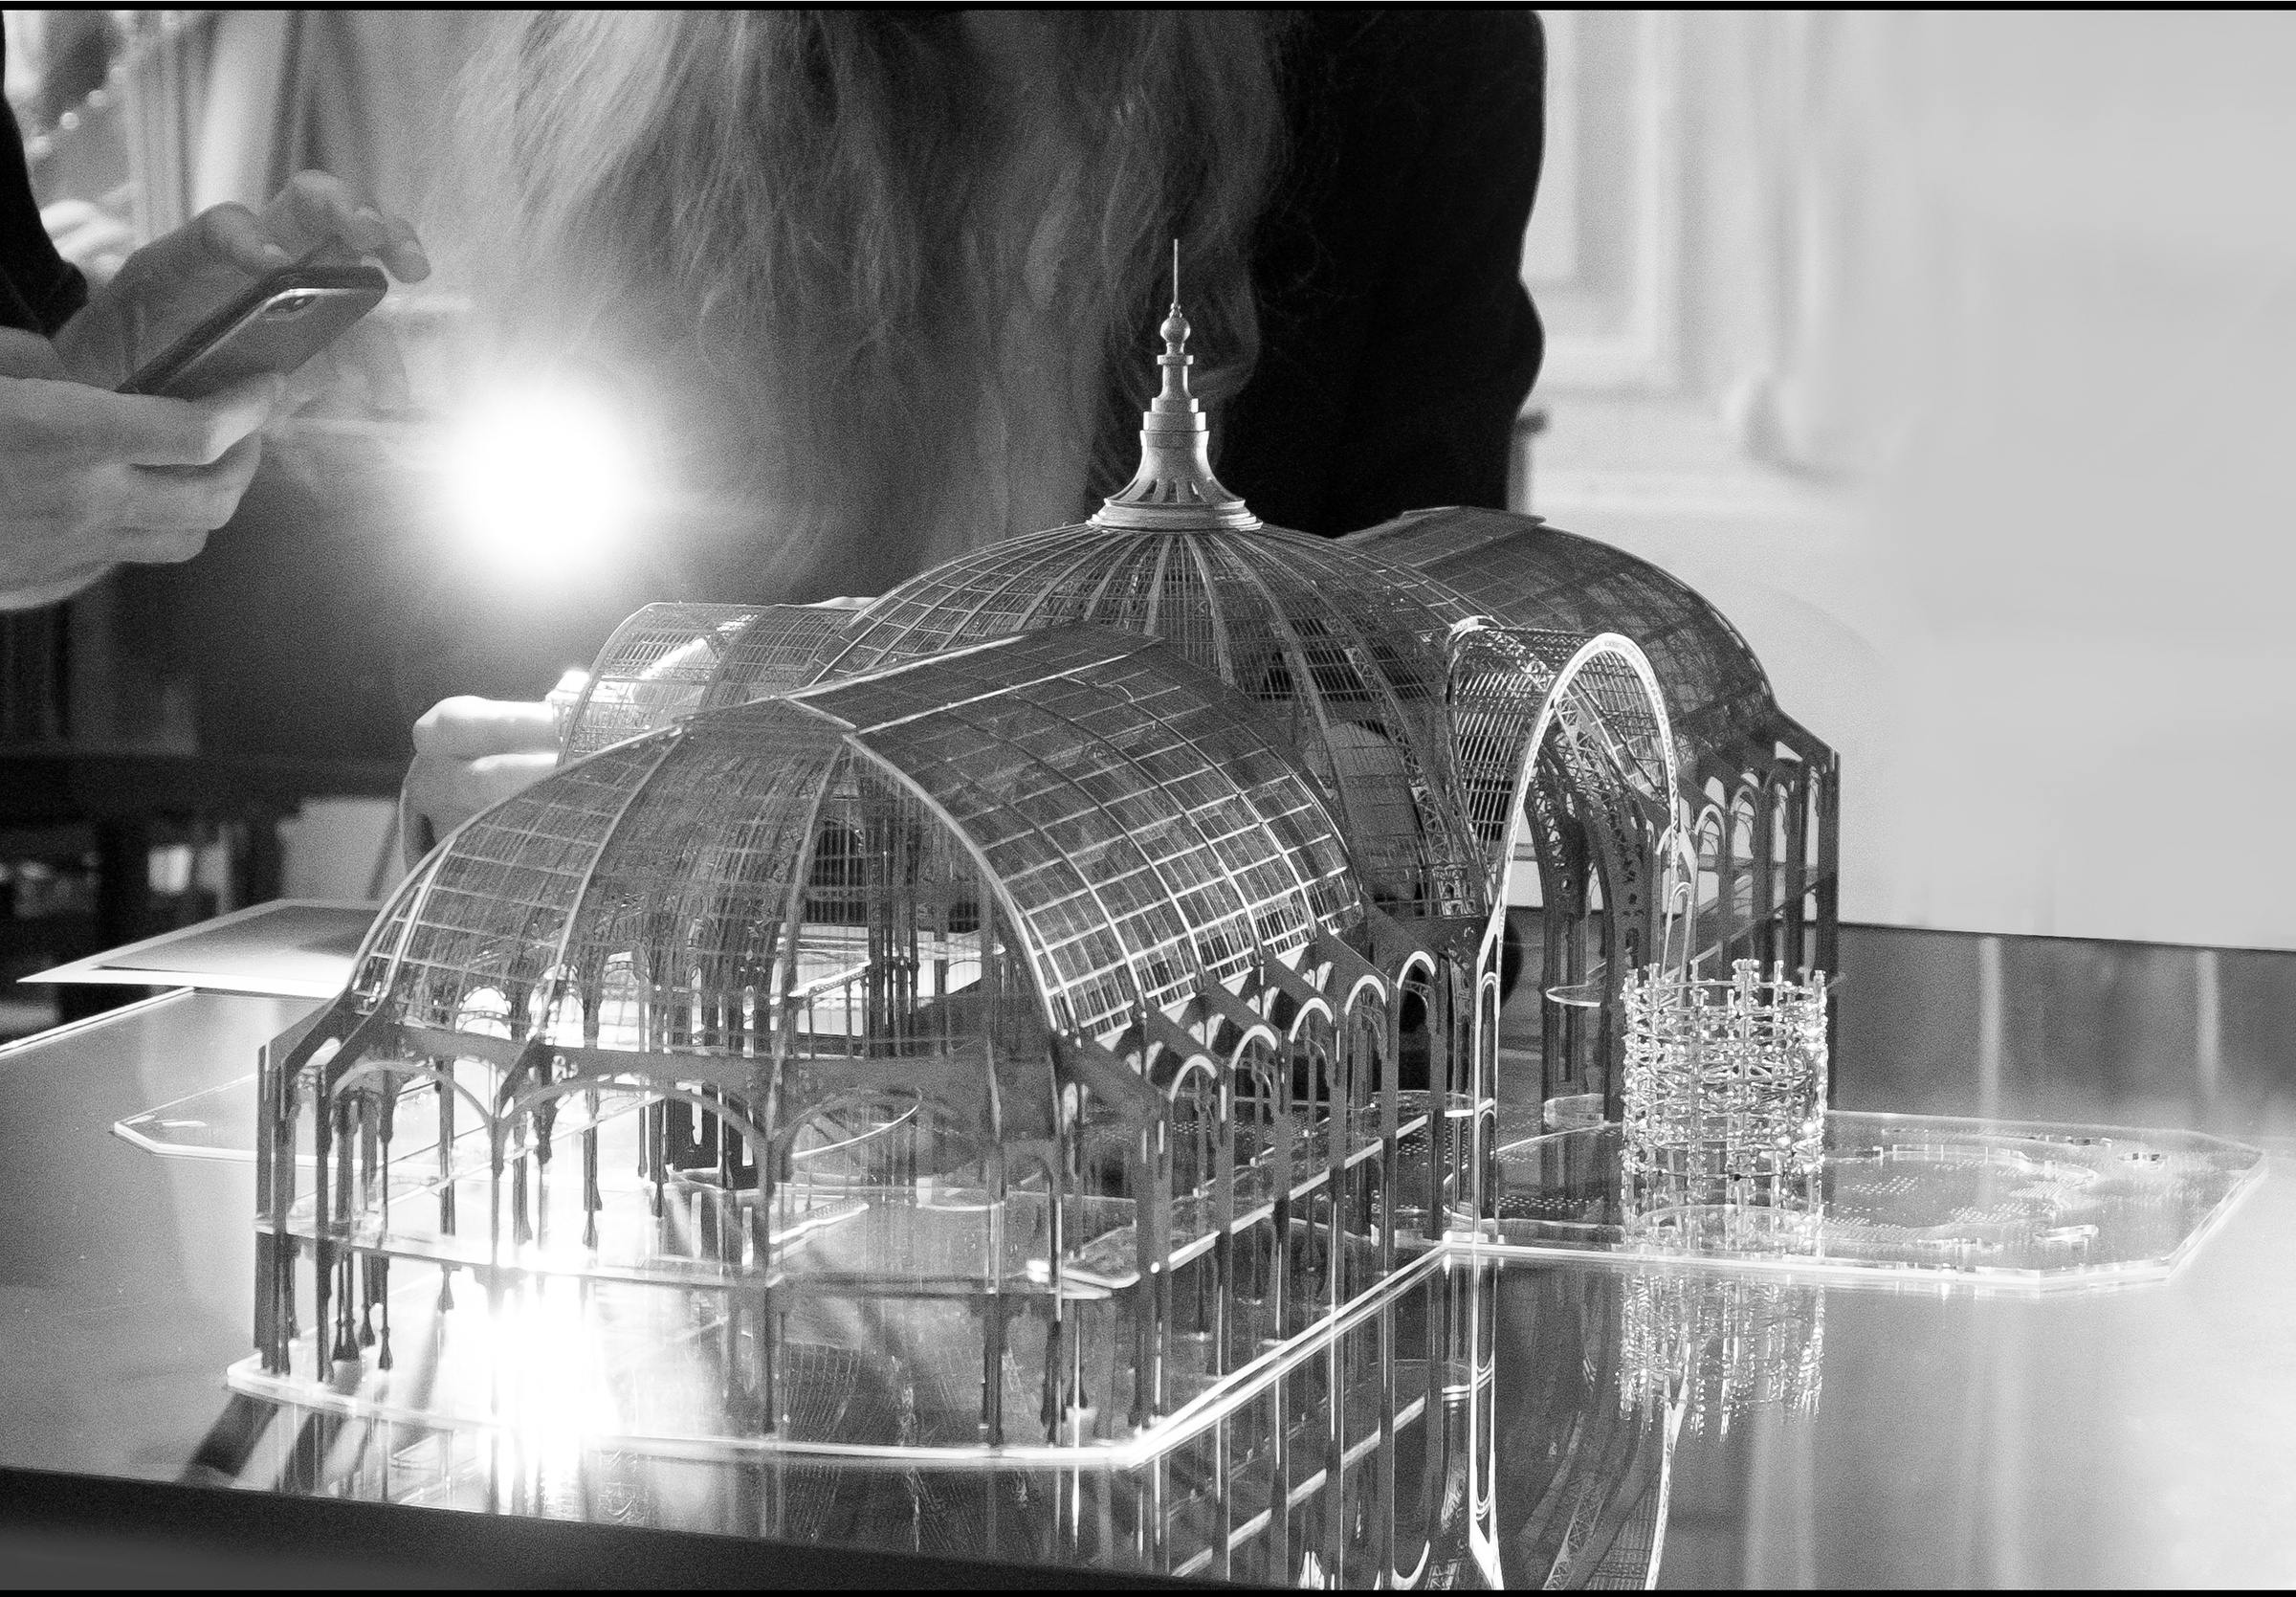 The Nave Cuff staged in a 1/250th scale model of the Grand Palais - Irène - Paris - High Jewellery - Architecture - Scenography